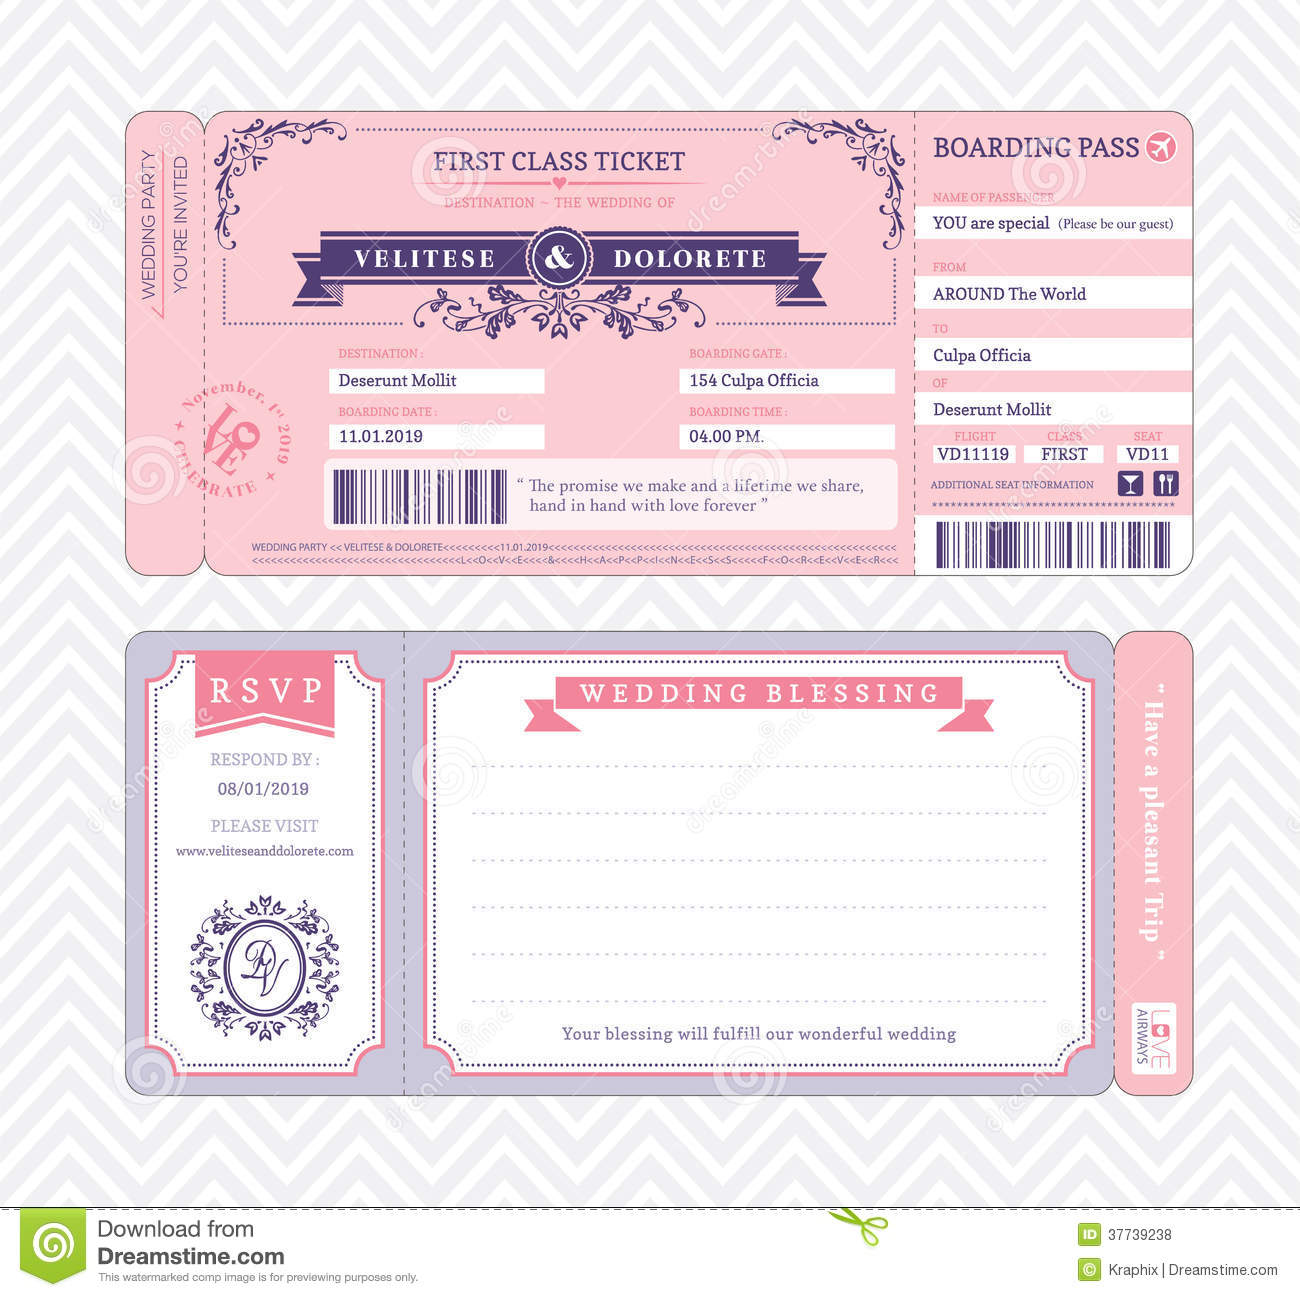 Boarding Pass Wedding Invitation Template  Free Templates For Tickets